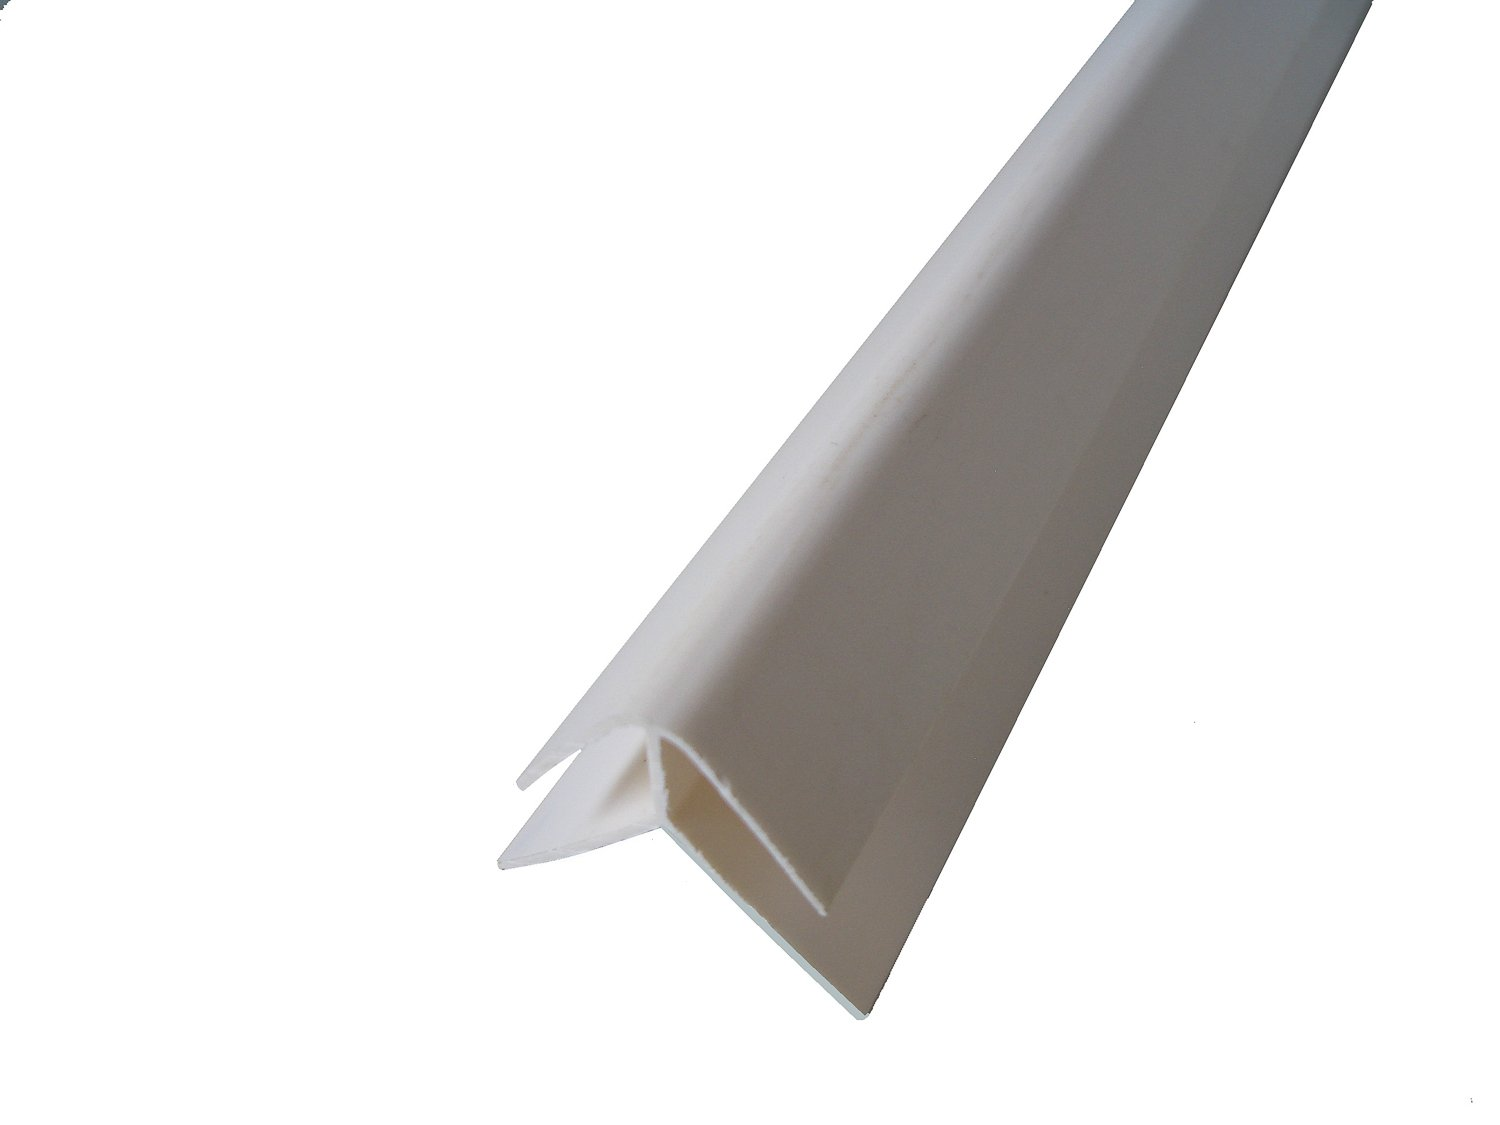 White Panel Trim Perfect for Bathroom Kitchen Shower Wall PVC Cladding Panels-8mm External Corner Edging Trim-100/% Waterproof-Use with Claddtech Adhesive